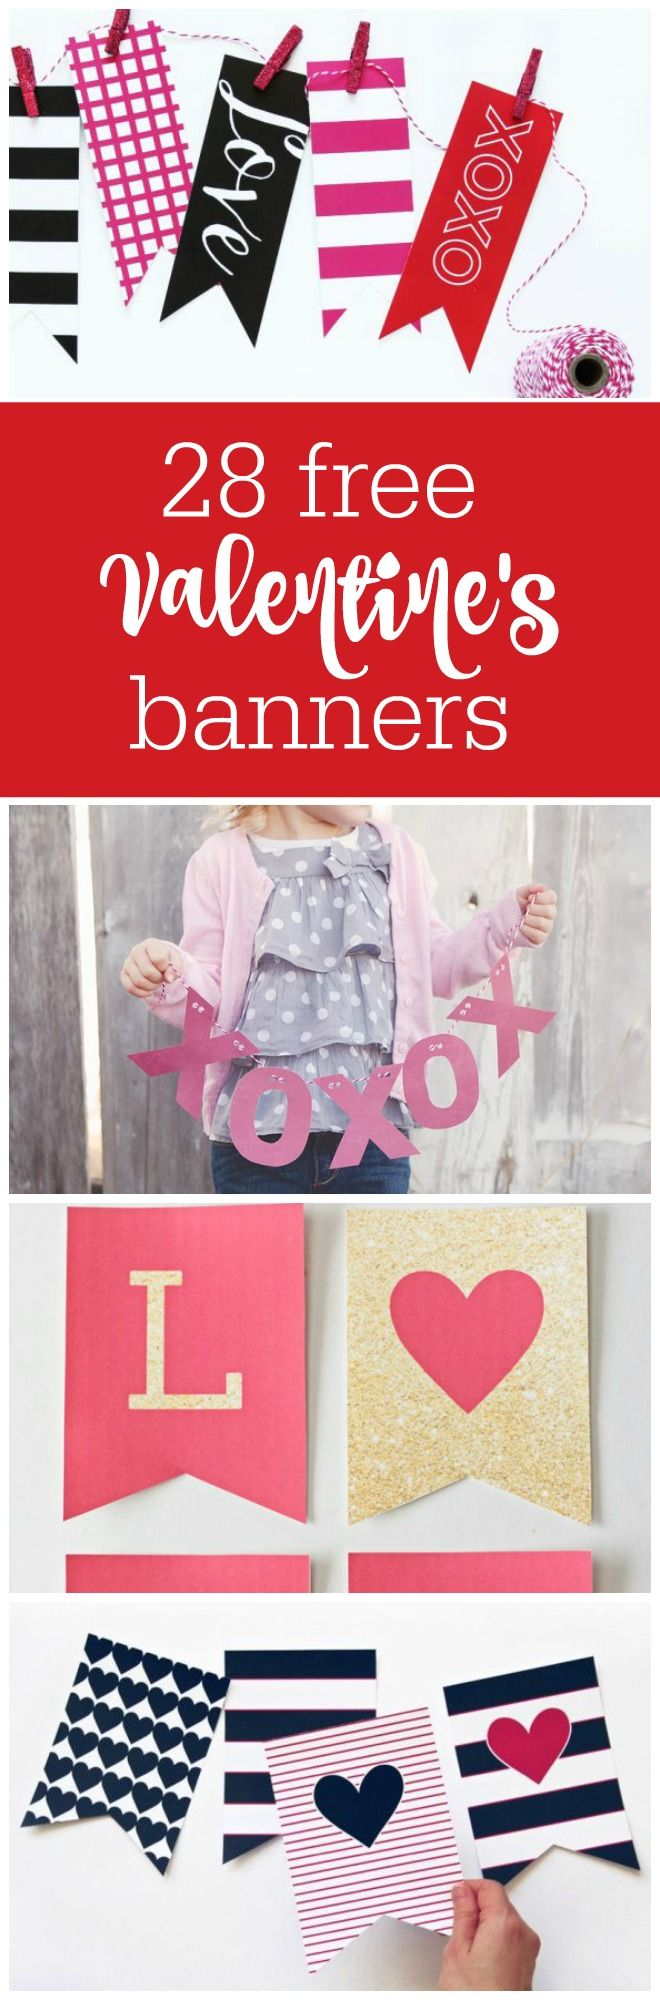 28 free Valentine's Day printable banners curated by The Party Teacher   http://thepartyteacher.com/2016/01/15/freebie-friday-28-free-valentines-printable-banners/